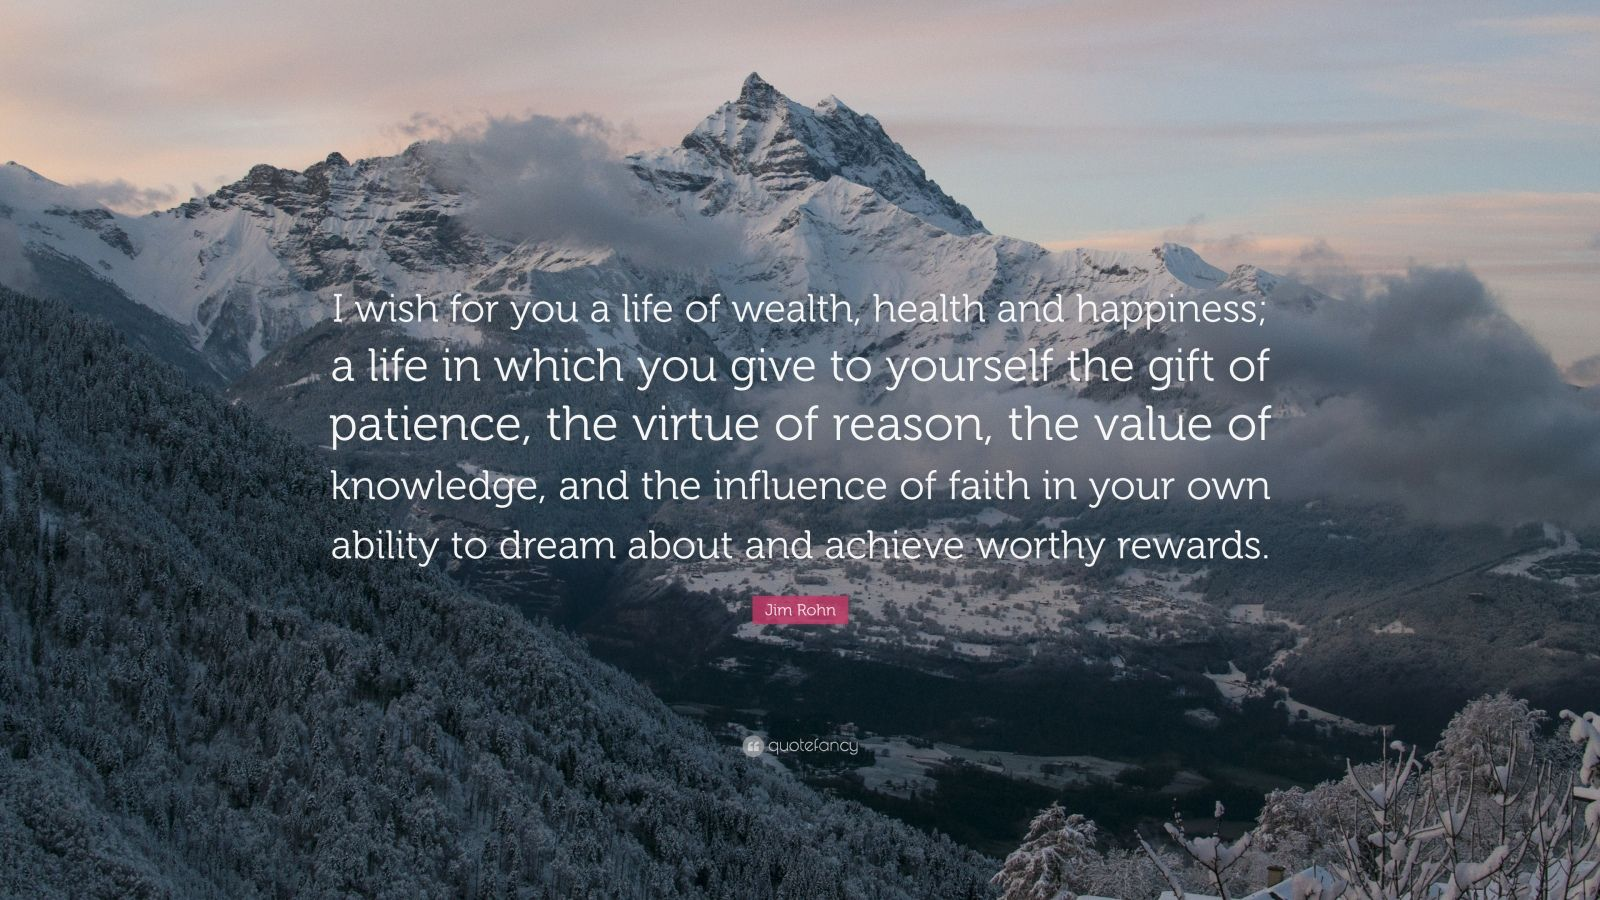 """Jim Rohn Quote: """"I wish for you a life of wealth, health and happiness; a life in which you give to yourself the gift of patience, the virtue of reason, the value of knowledge, and the influence of faith in your own ability to dream about and achieve worthy rewards."""""""